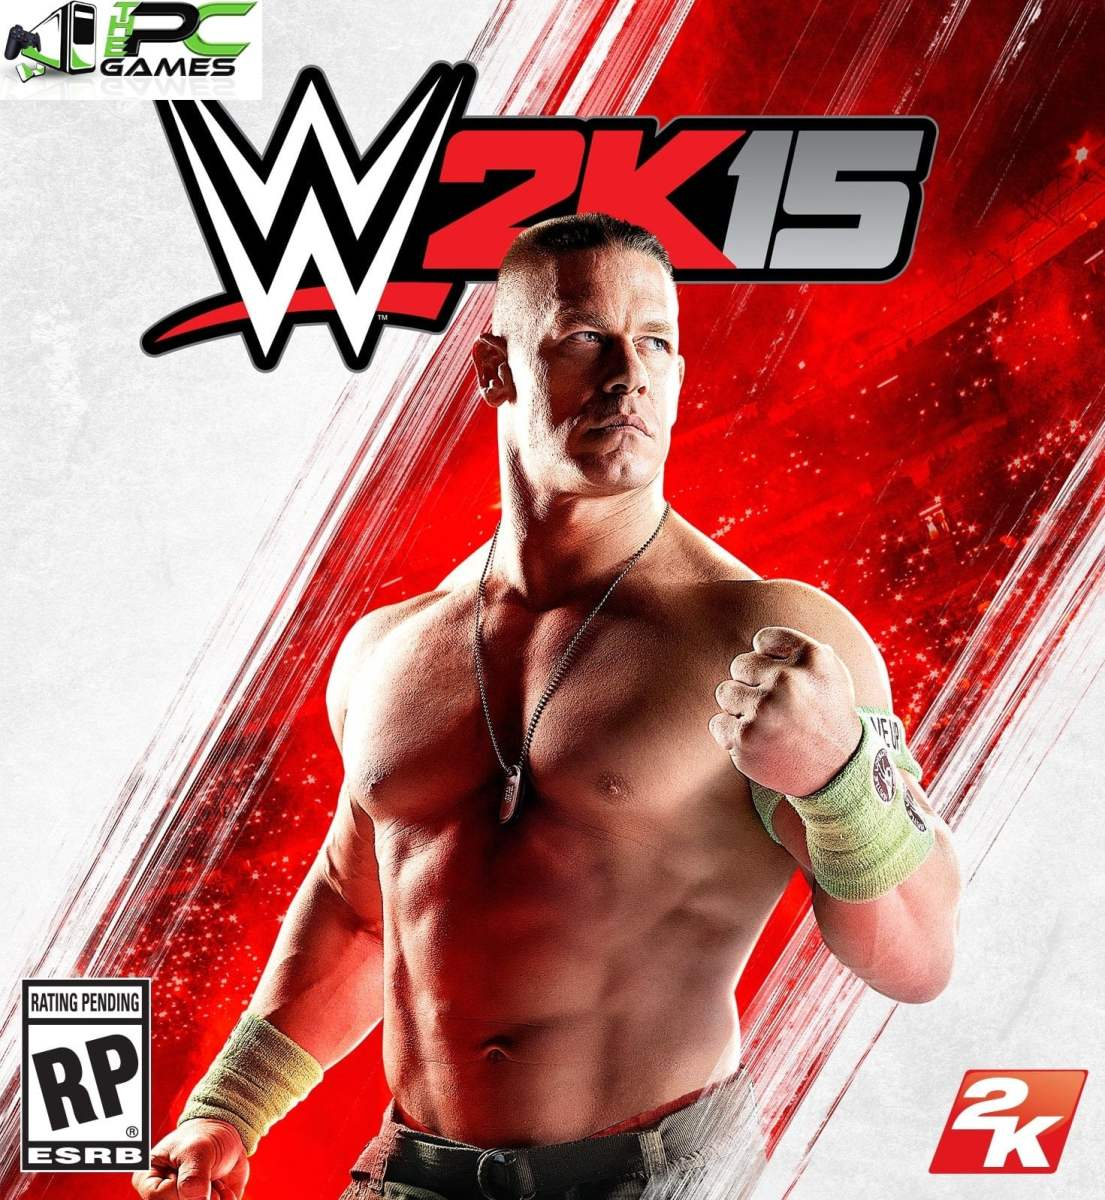 WWE 2k15 PC Game Free Download Full Version